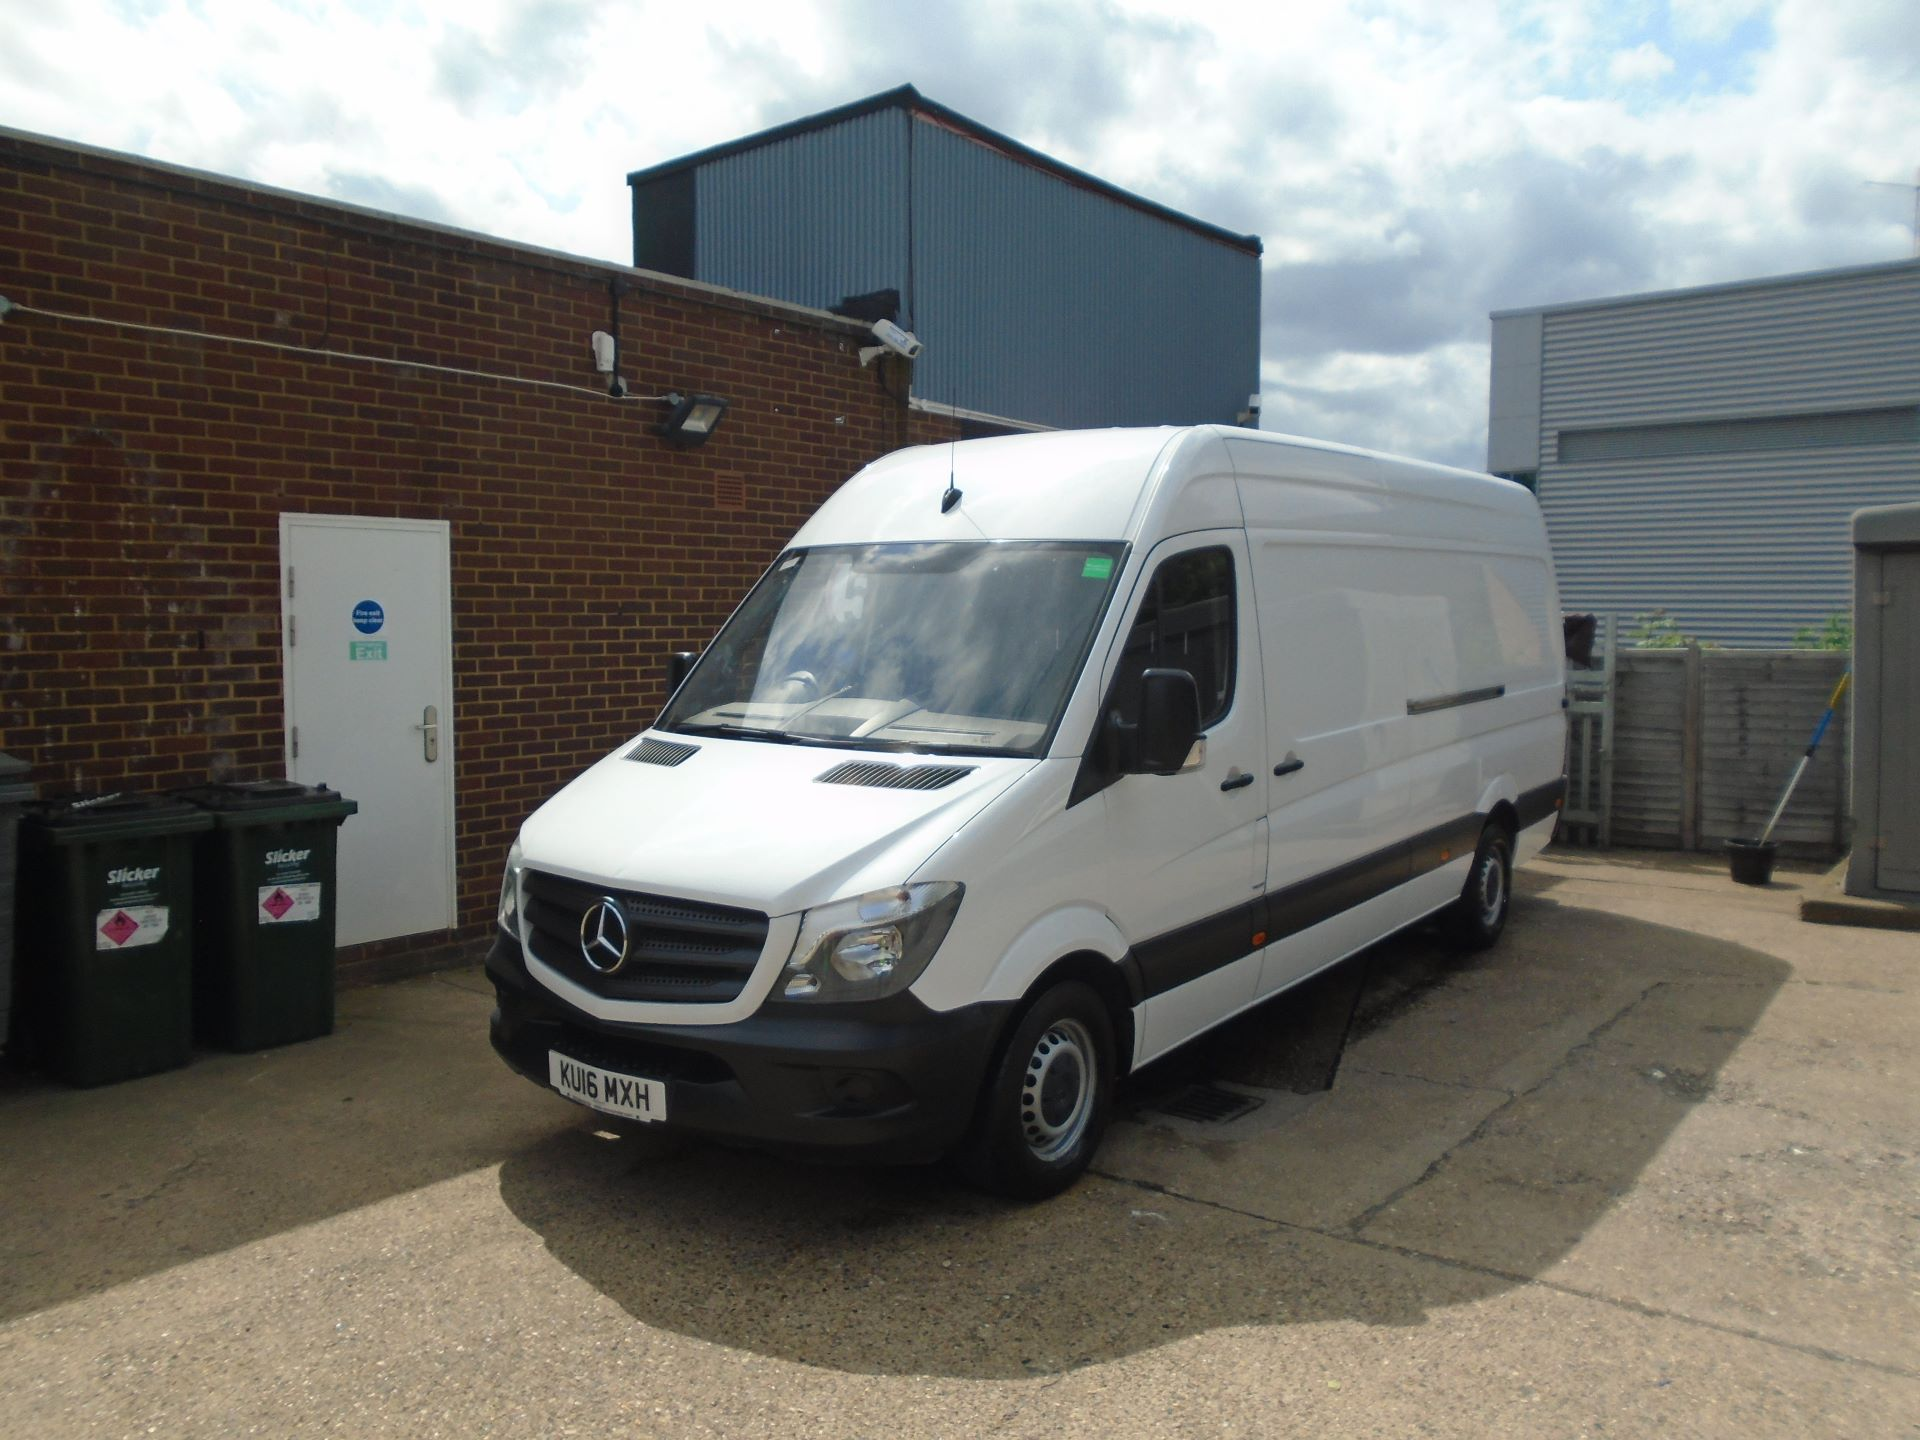 2016 Mercedes-Benz Sprinter 3.5T High Roof Van EURO 5 (KU16MXH) Thumbnail 7